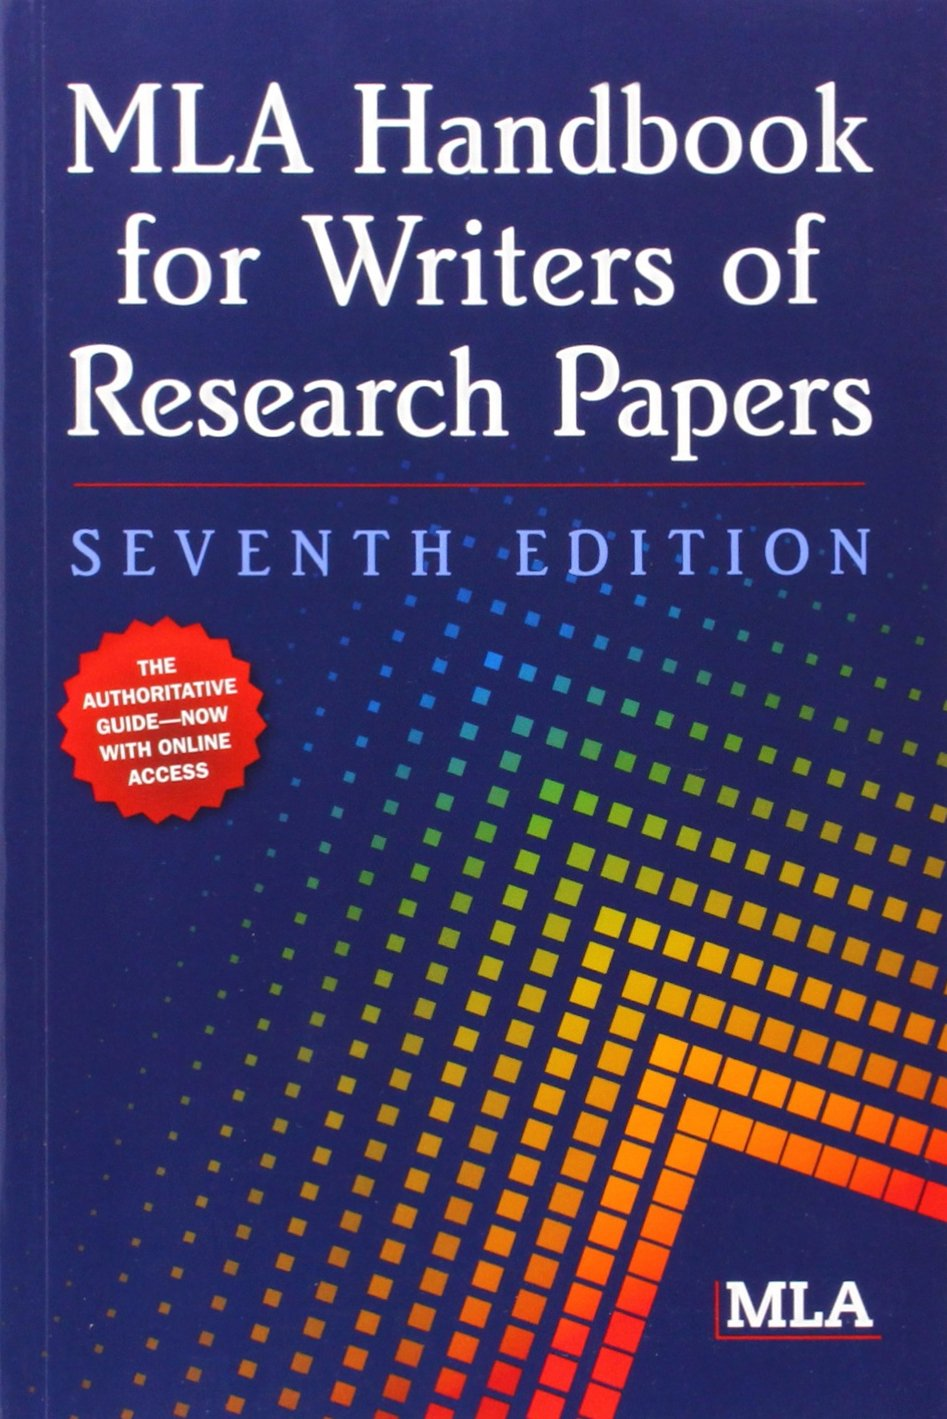 001 Research Paper 71lknvqs6gl Mla Handbook For Writers Of Papers 7th Edition Wondrous Pdf Free Download Full